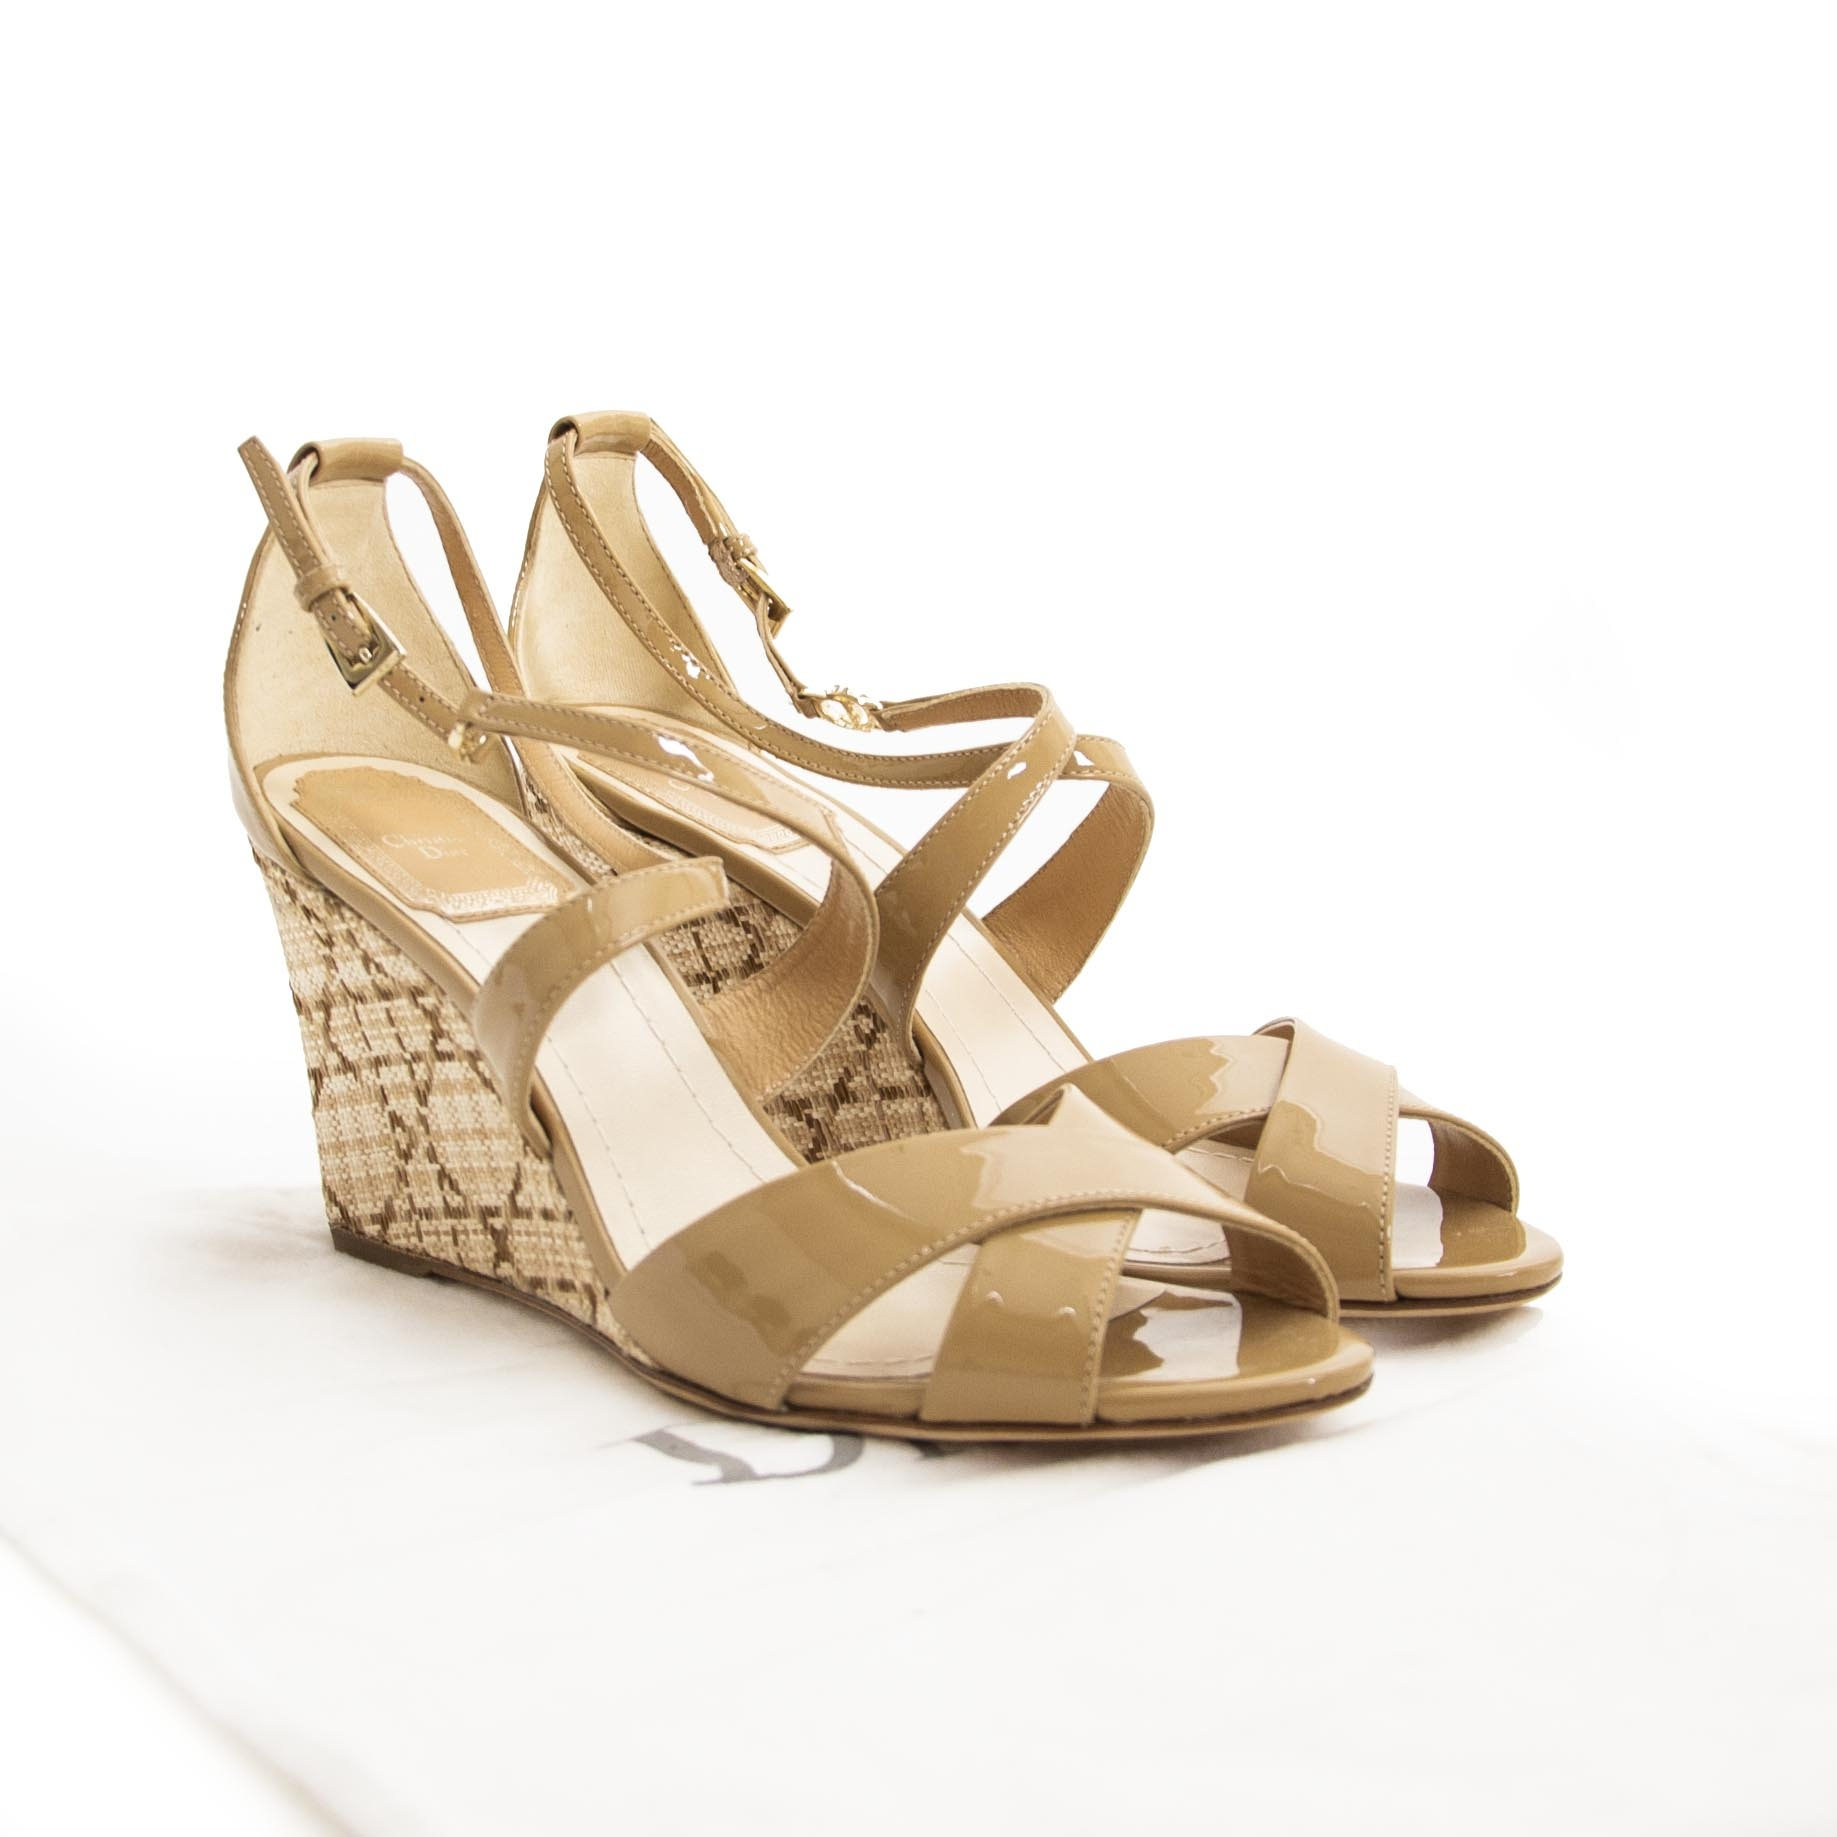 Christian Dior Nude Wedge Sandals - 37,5 (Labellov) For the best price at LabelLov. Pour le meilleur prix à LabelLOV. Voor de beste prijs bij LabelLOV.